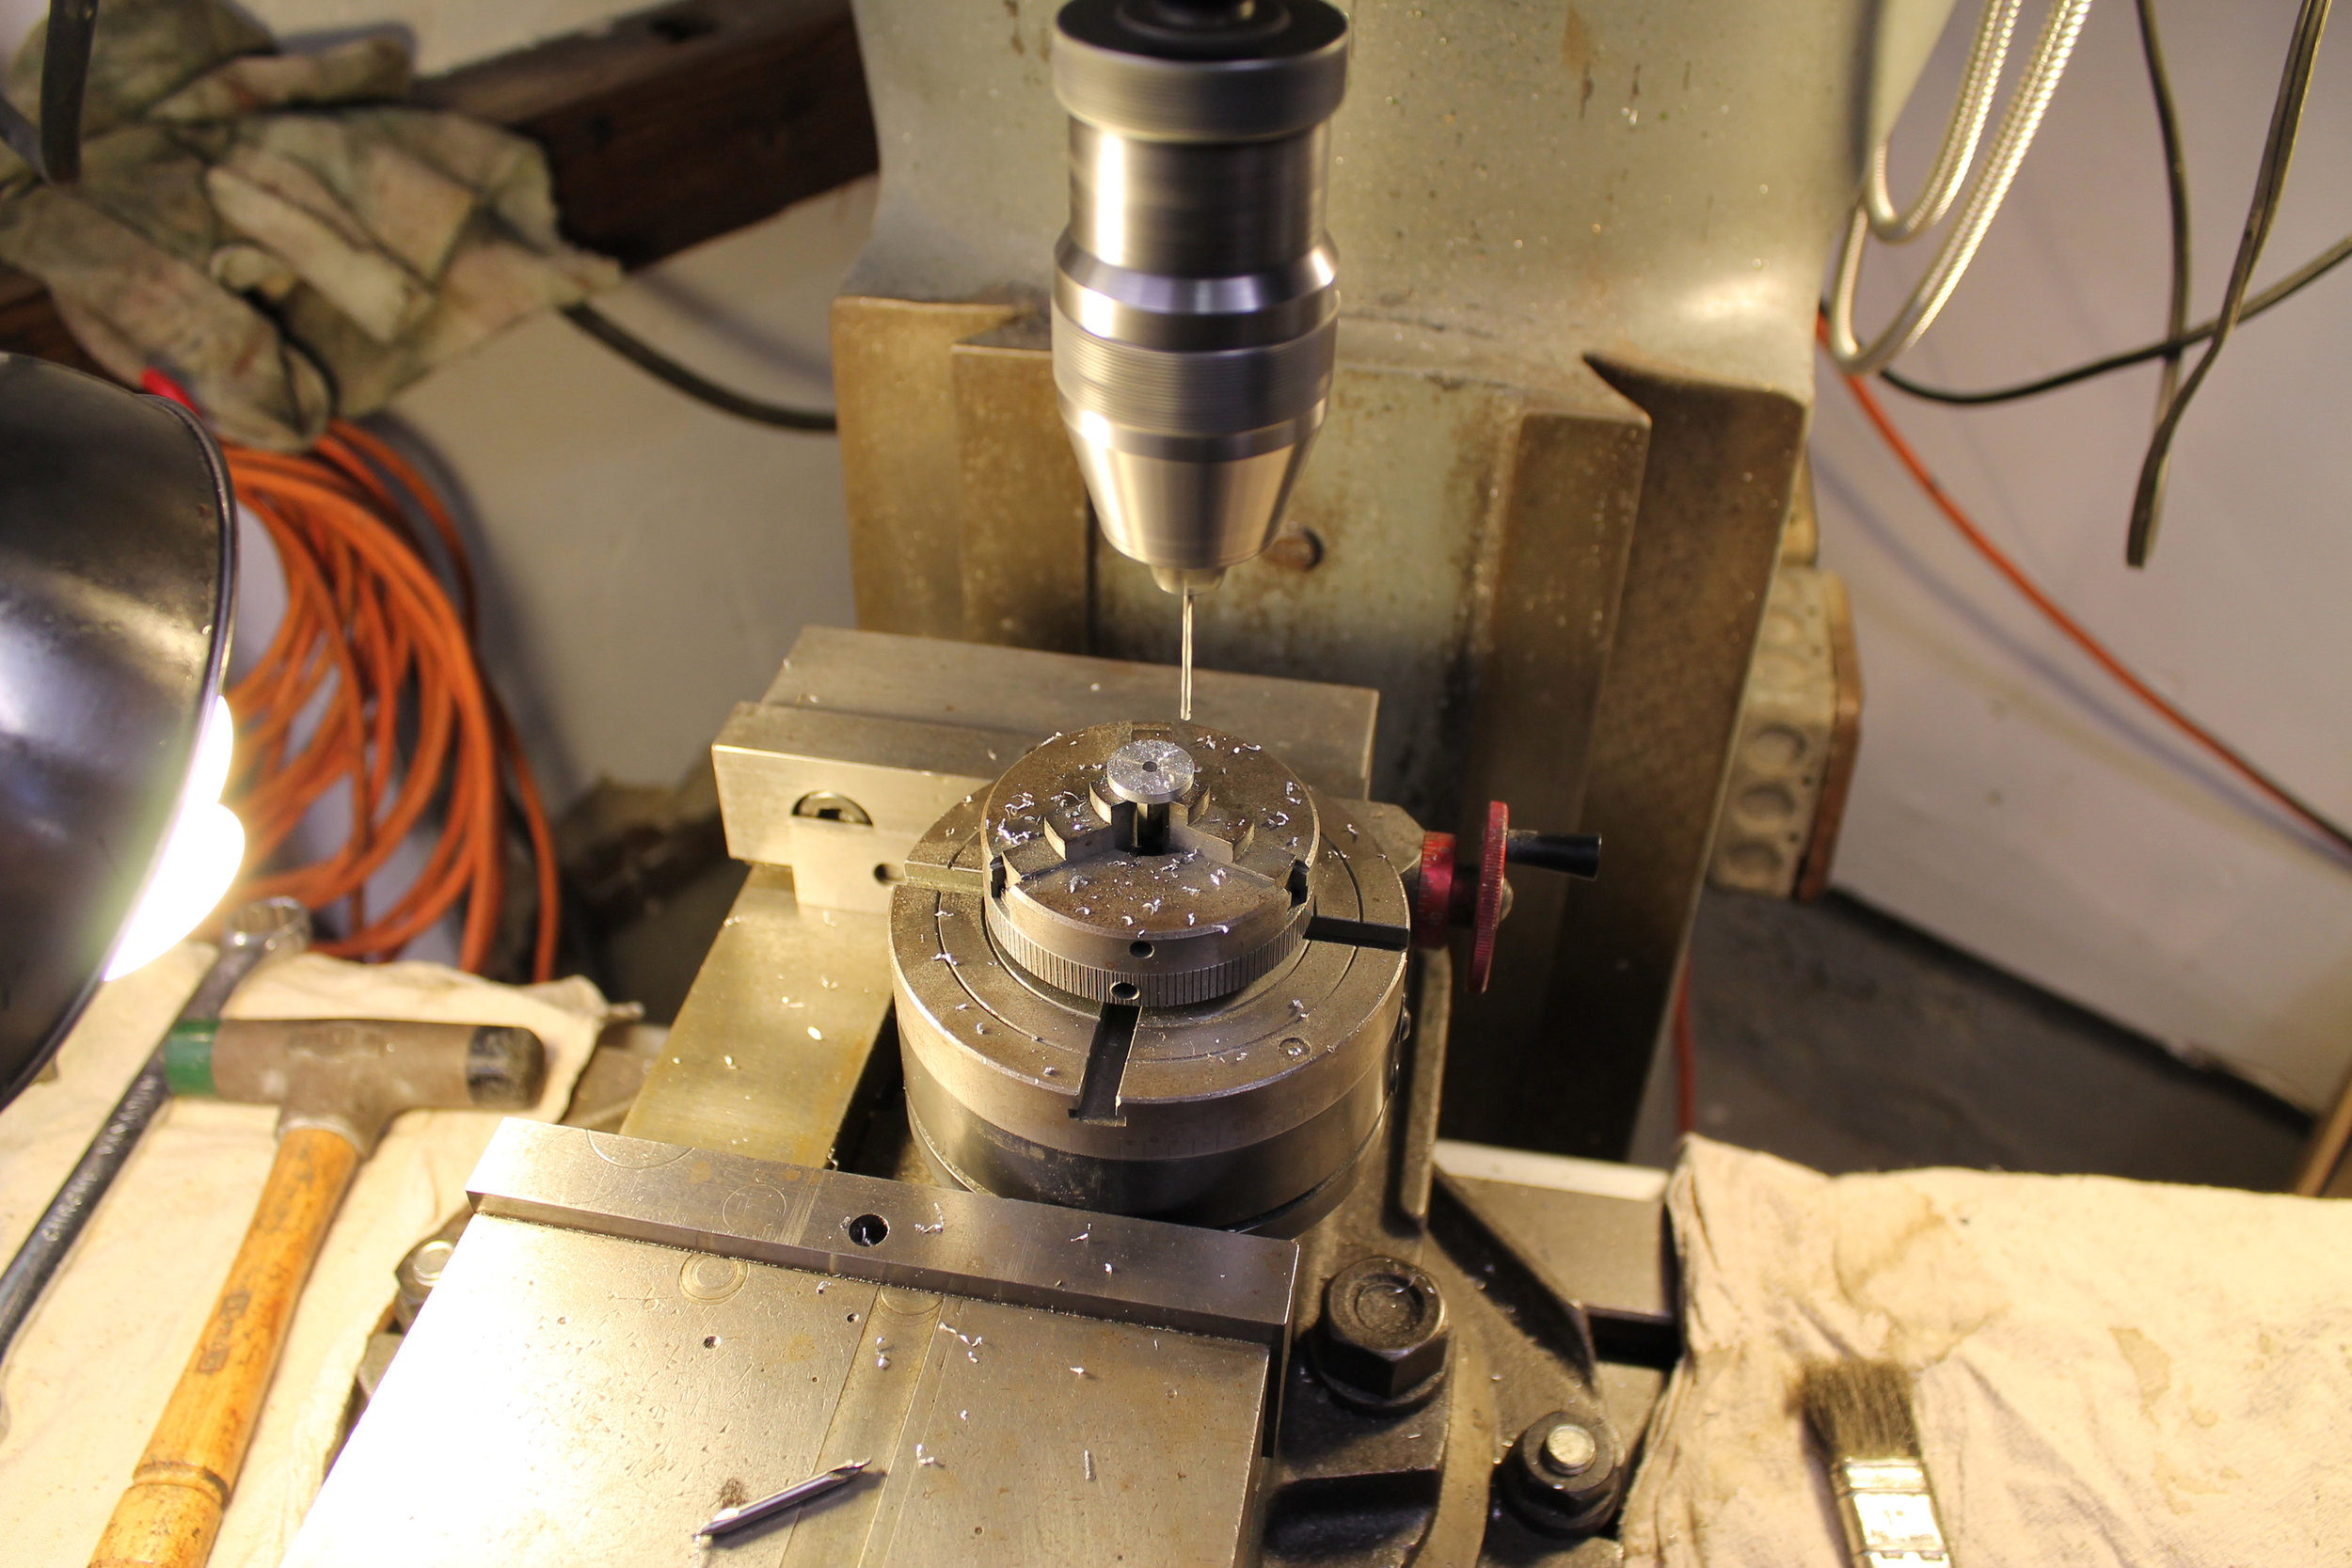 Drilling Gear Blanks with Sherline Rotary Table